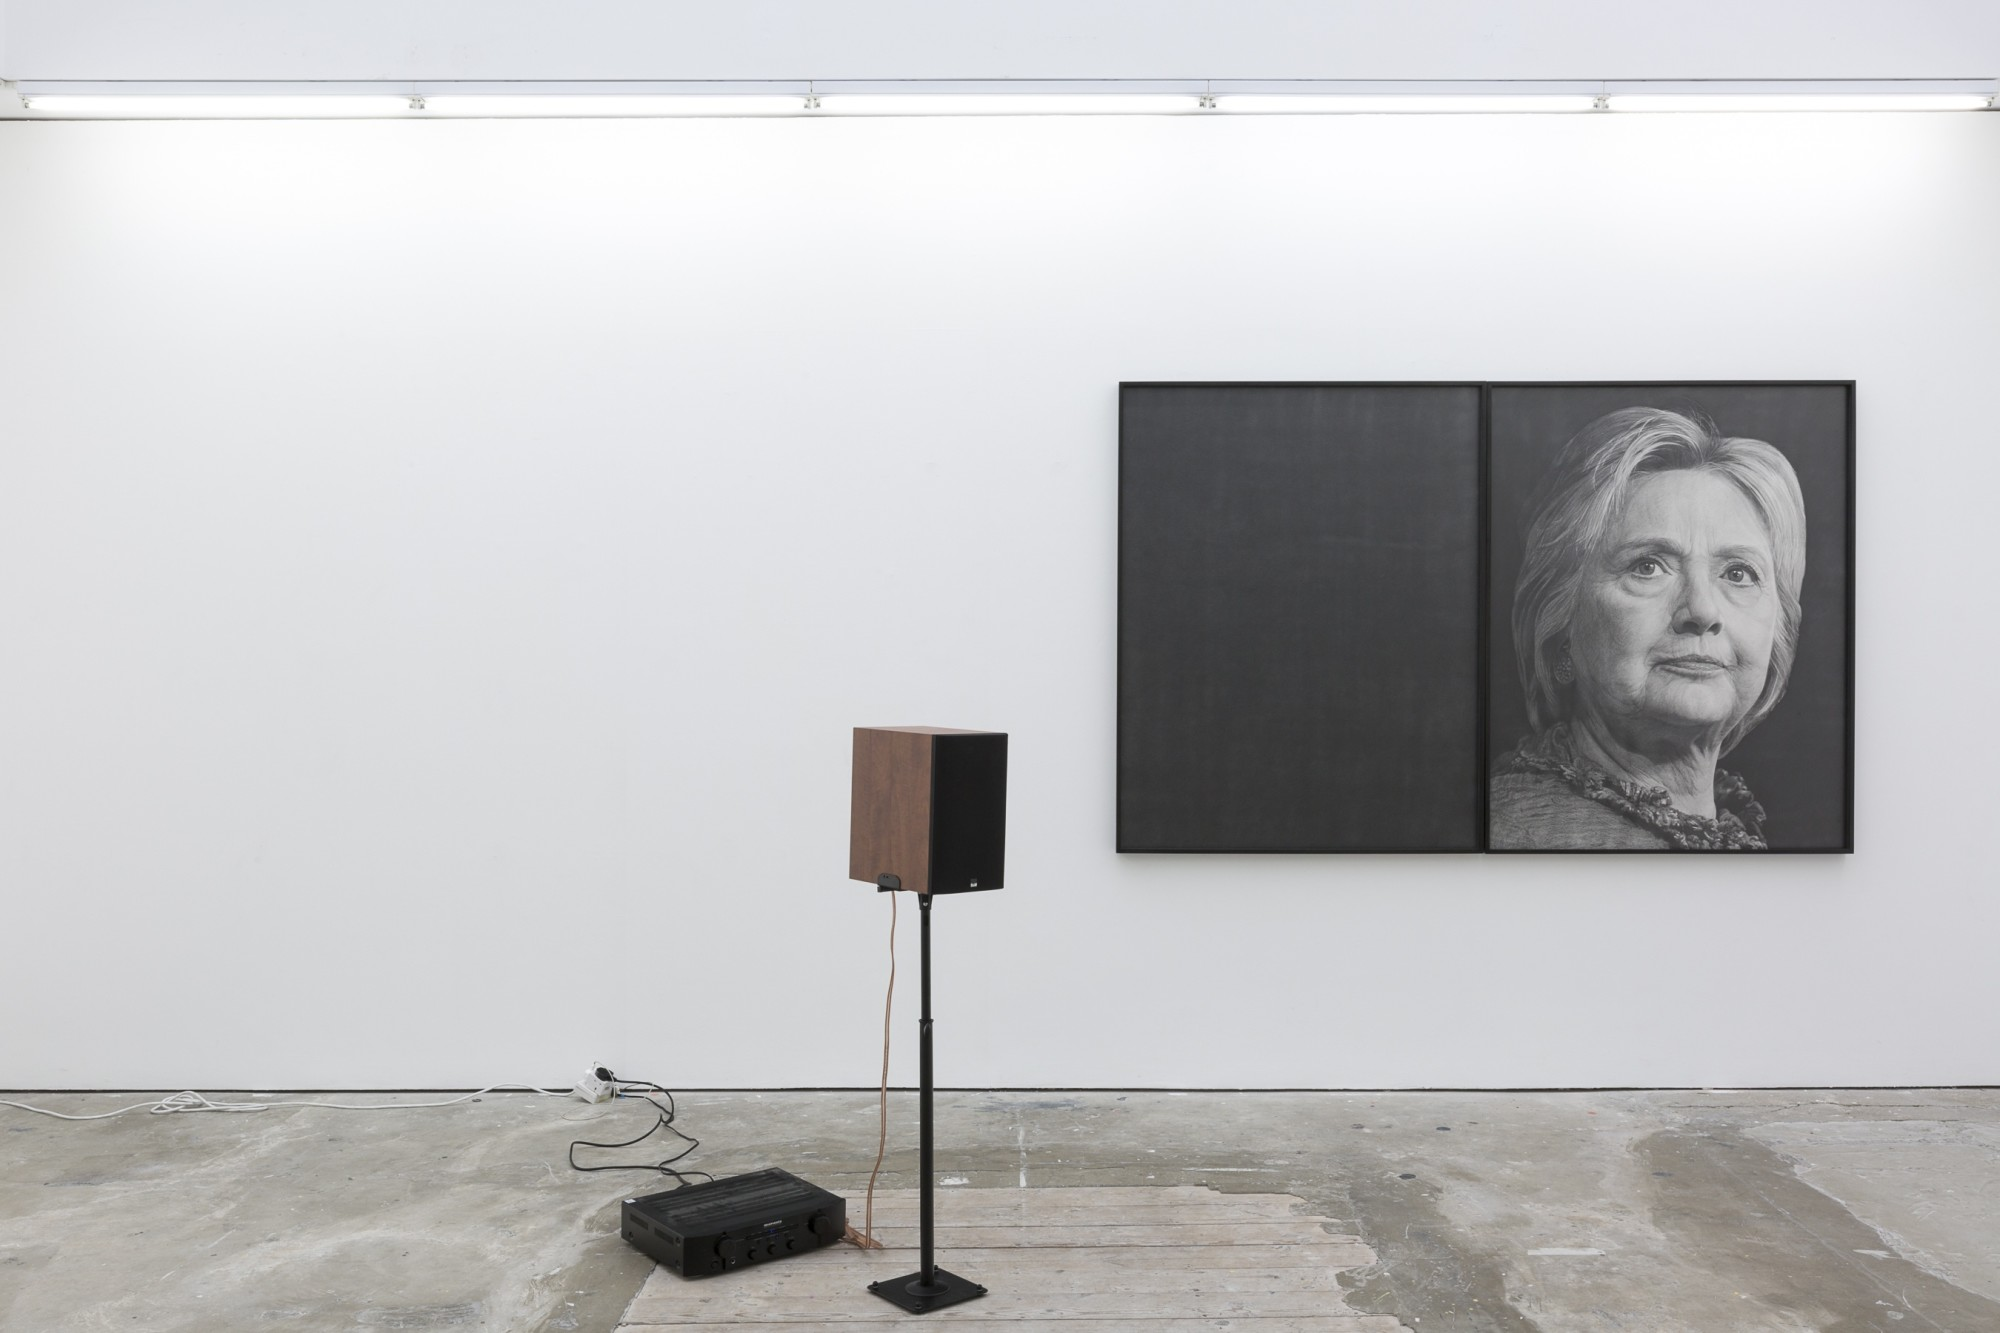 Karl Haendel, Hillary, 2016  Courtesy of the artist and Susanne Vielmetter Los Angeles Projects